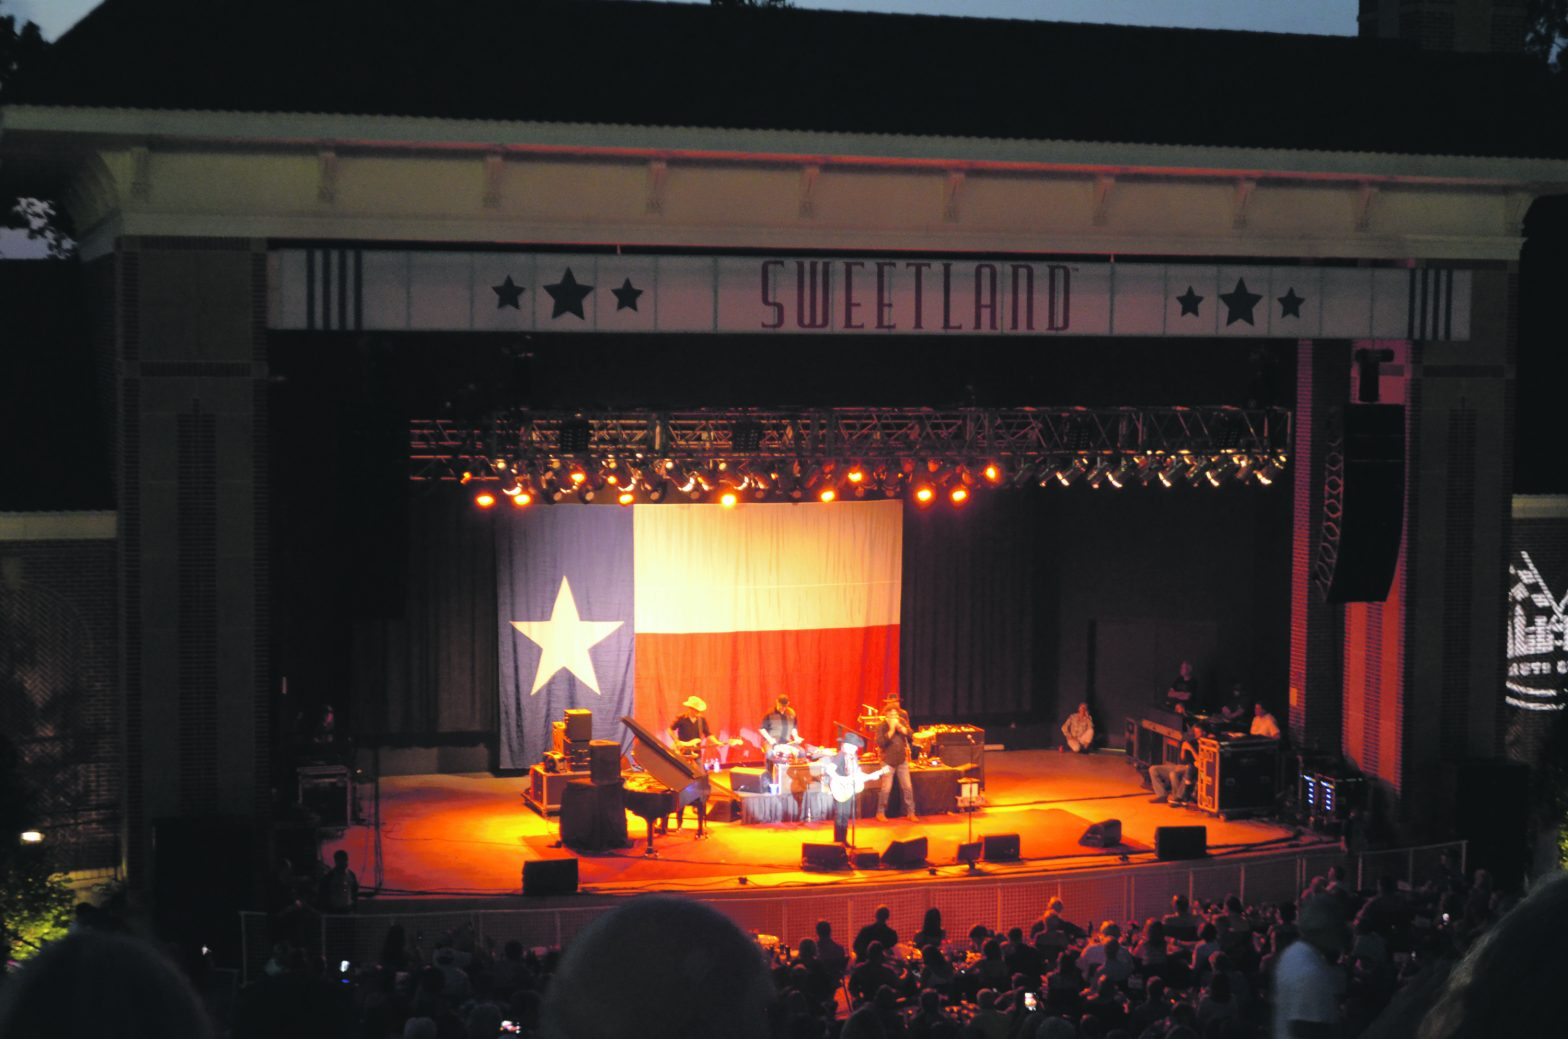 Willie Nelson And Company  Take The Stage At Sweetland